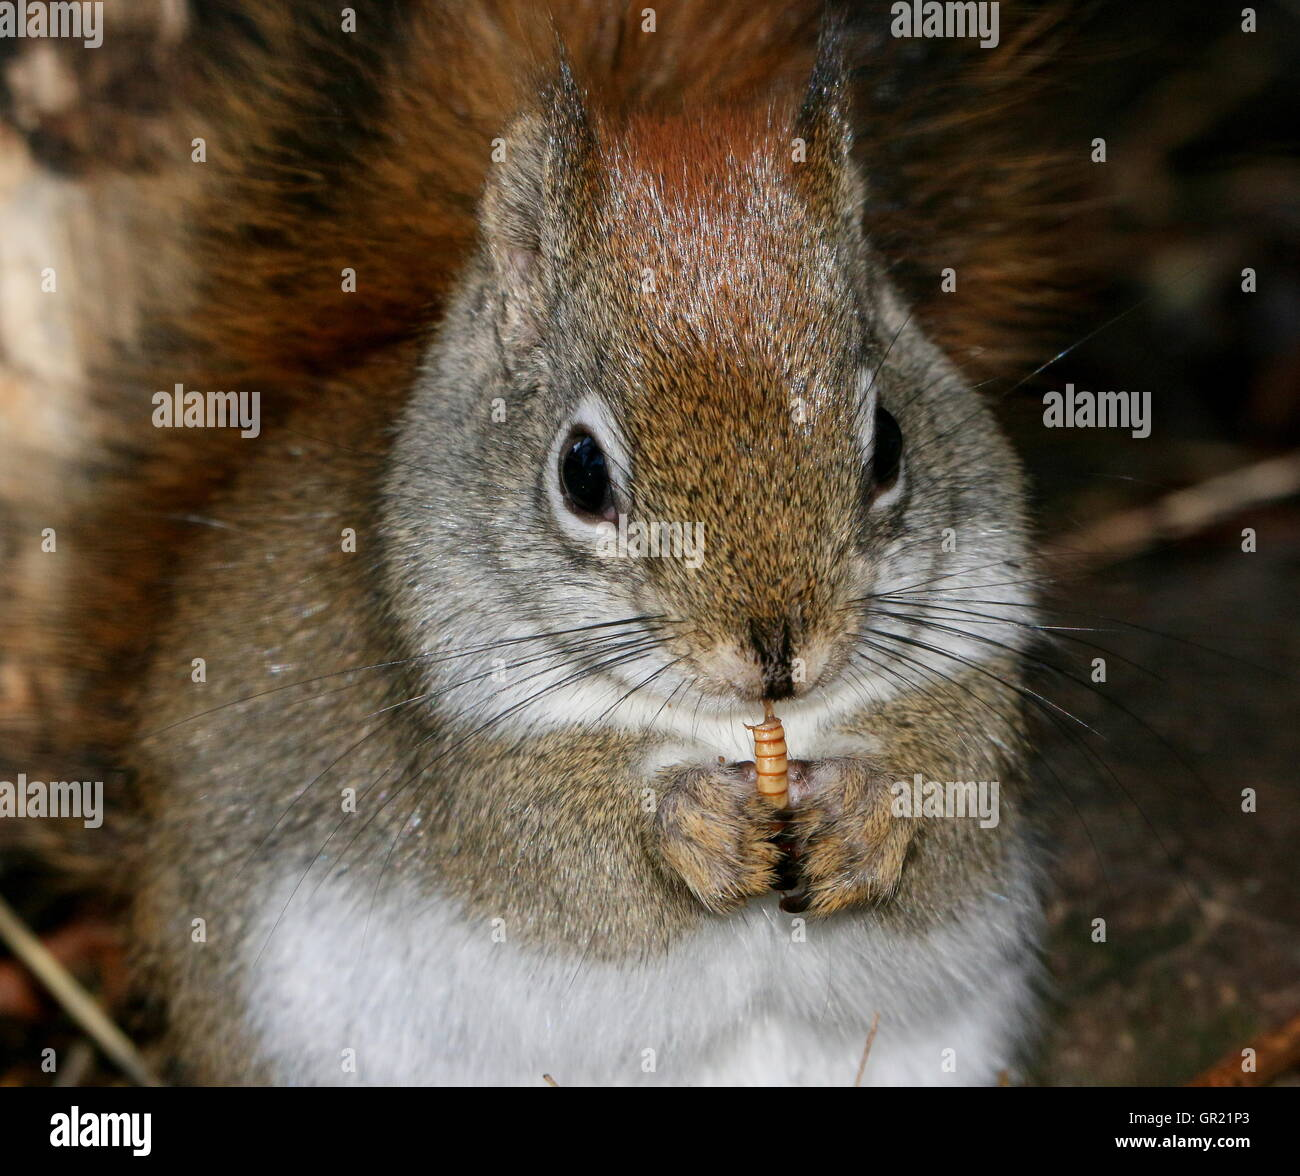 North American  Red Squirrel (Tamiasciurus hudsonicus) eating a grub held in his paws - Stock Image